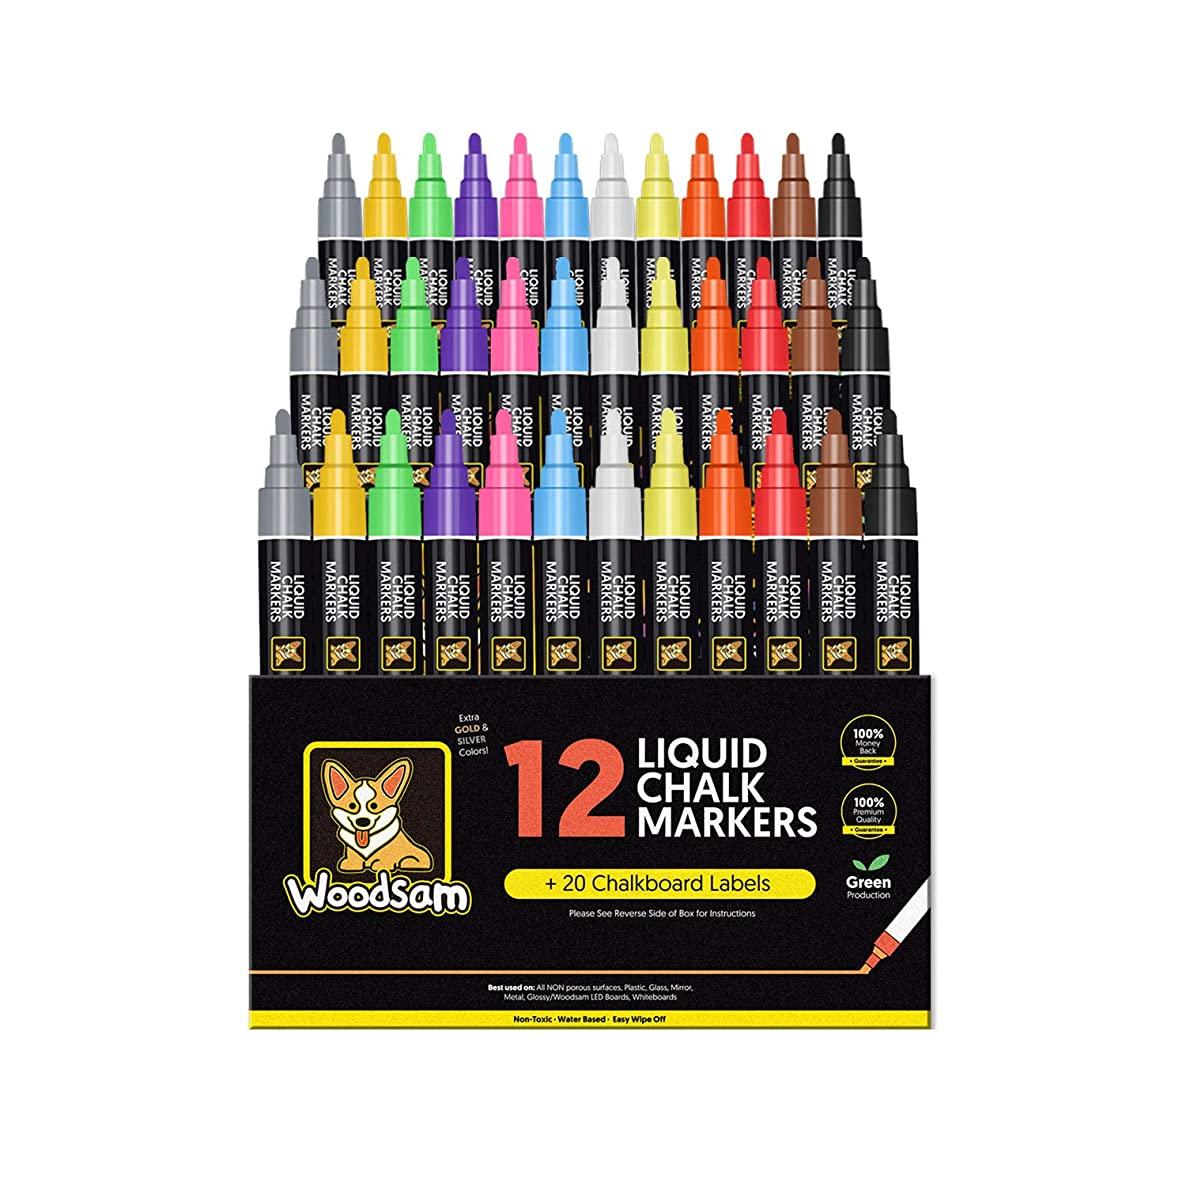 Chalk Markers by Woodsam - Liquid Neon Pens -Chalkboard, Glass, Window Labels & Reversible Bullet and Chisel-Fine Tips Included - Erasable Color Paint (36-Pack)